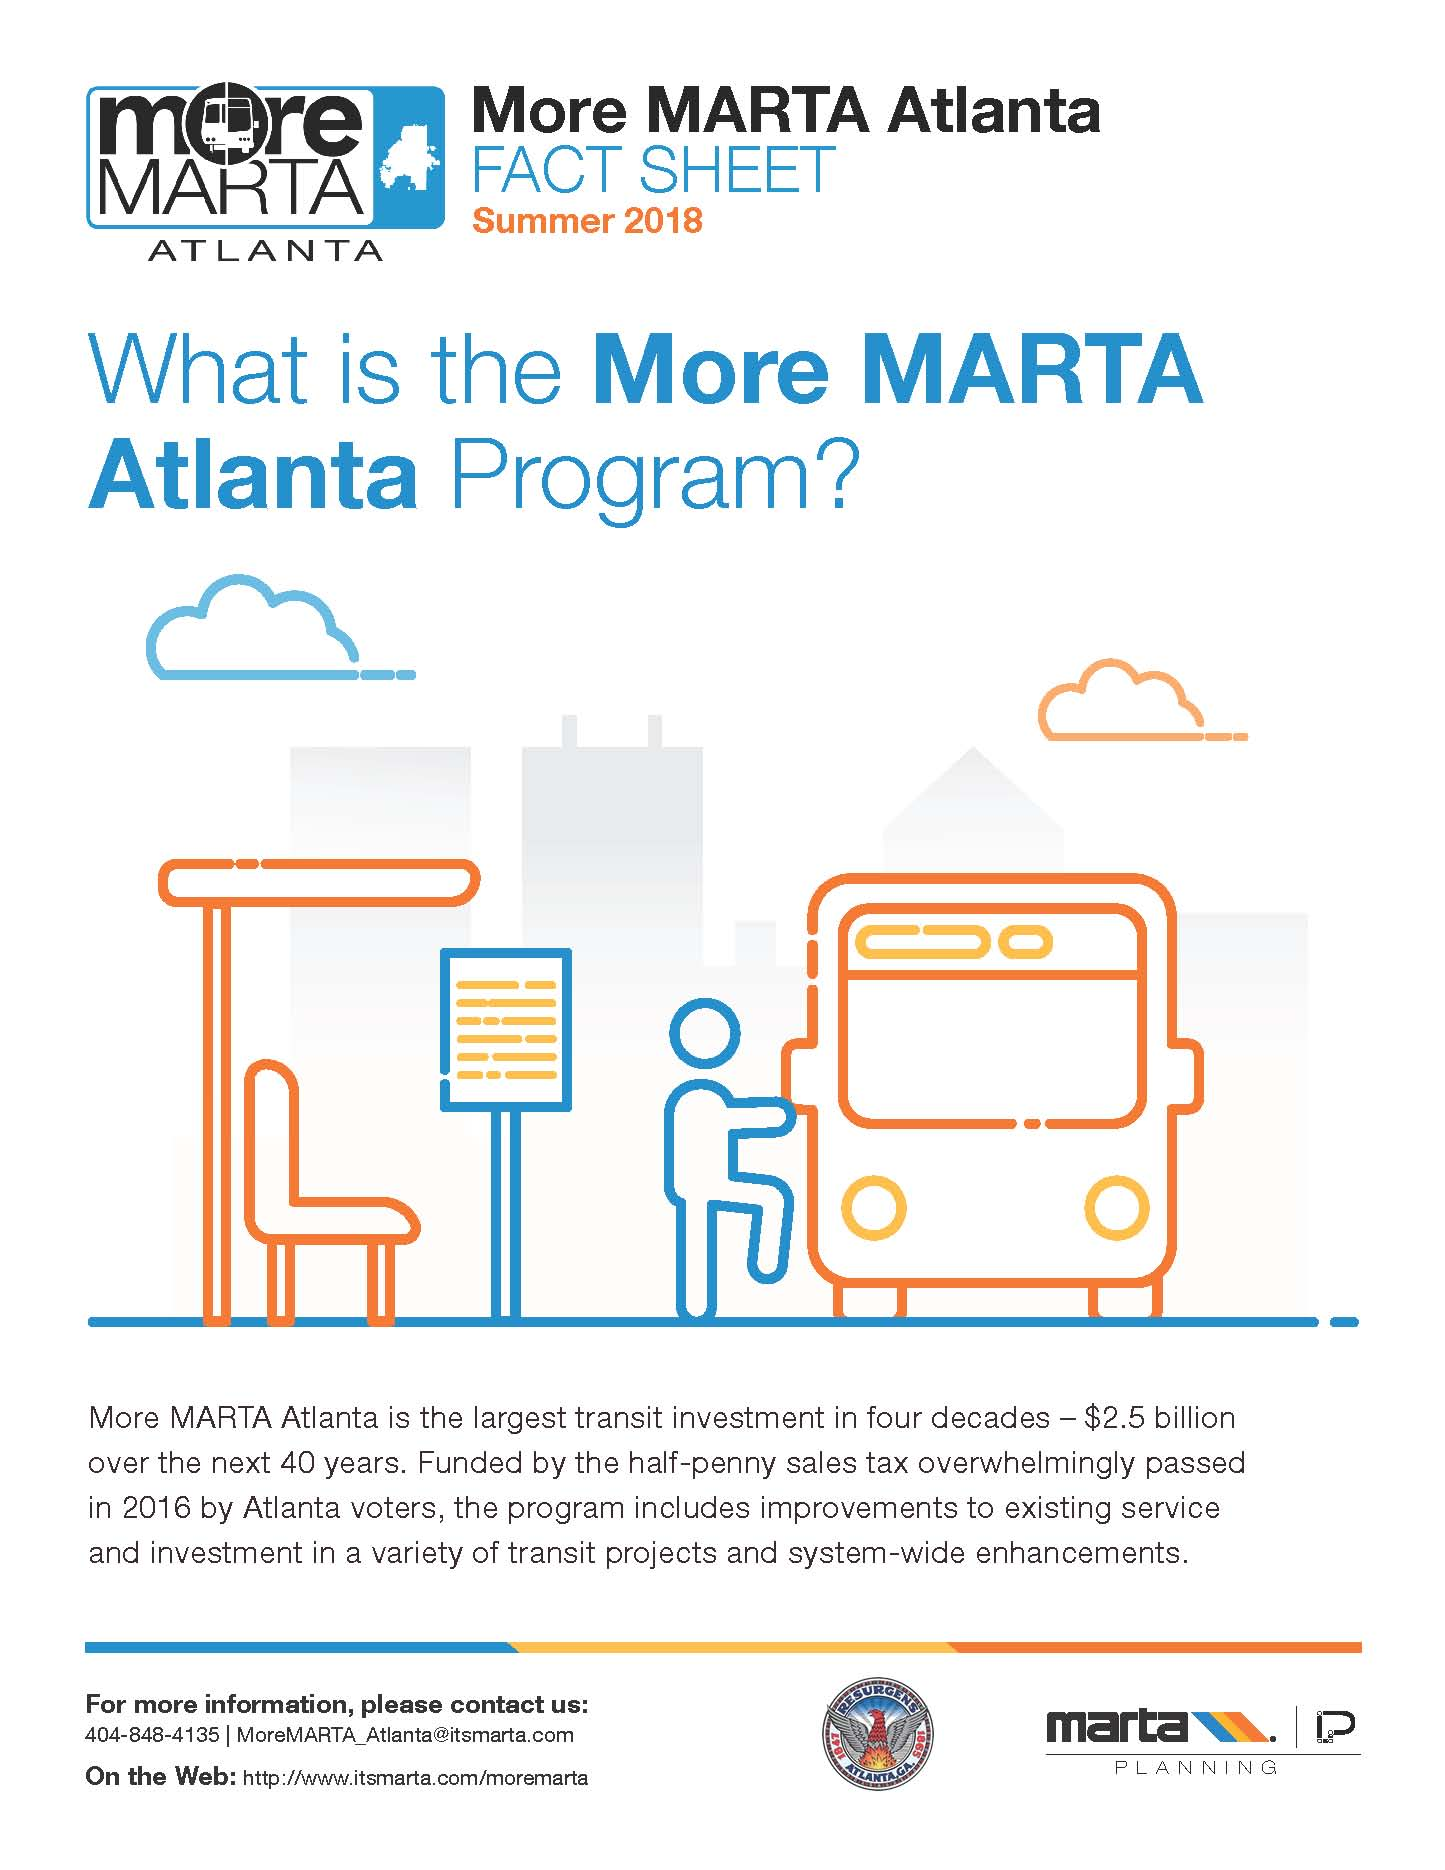 City of Atlanta More MARTA Fact Sheet Page 1